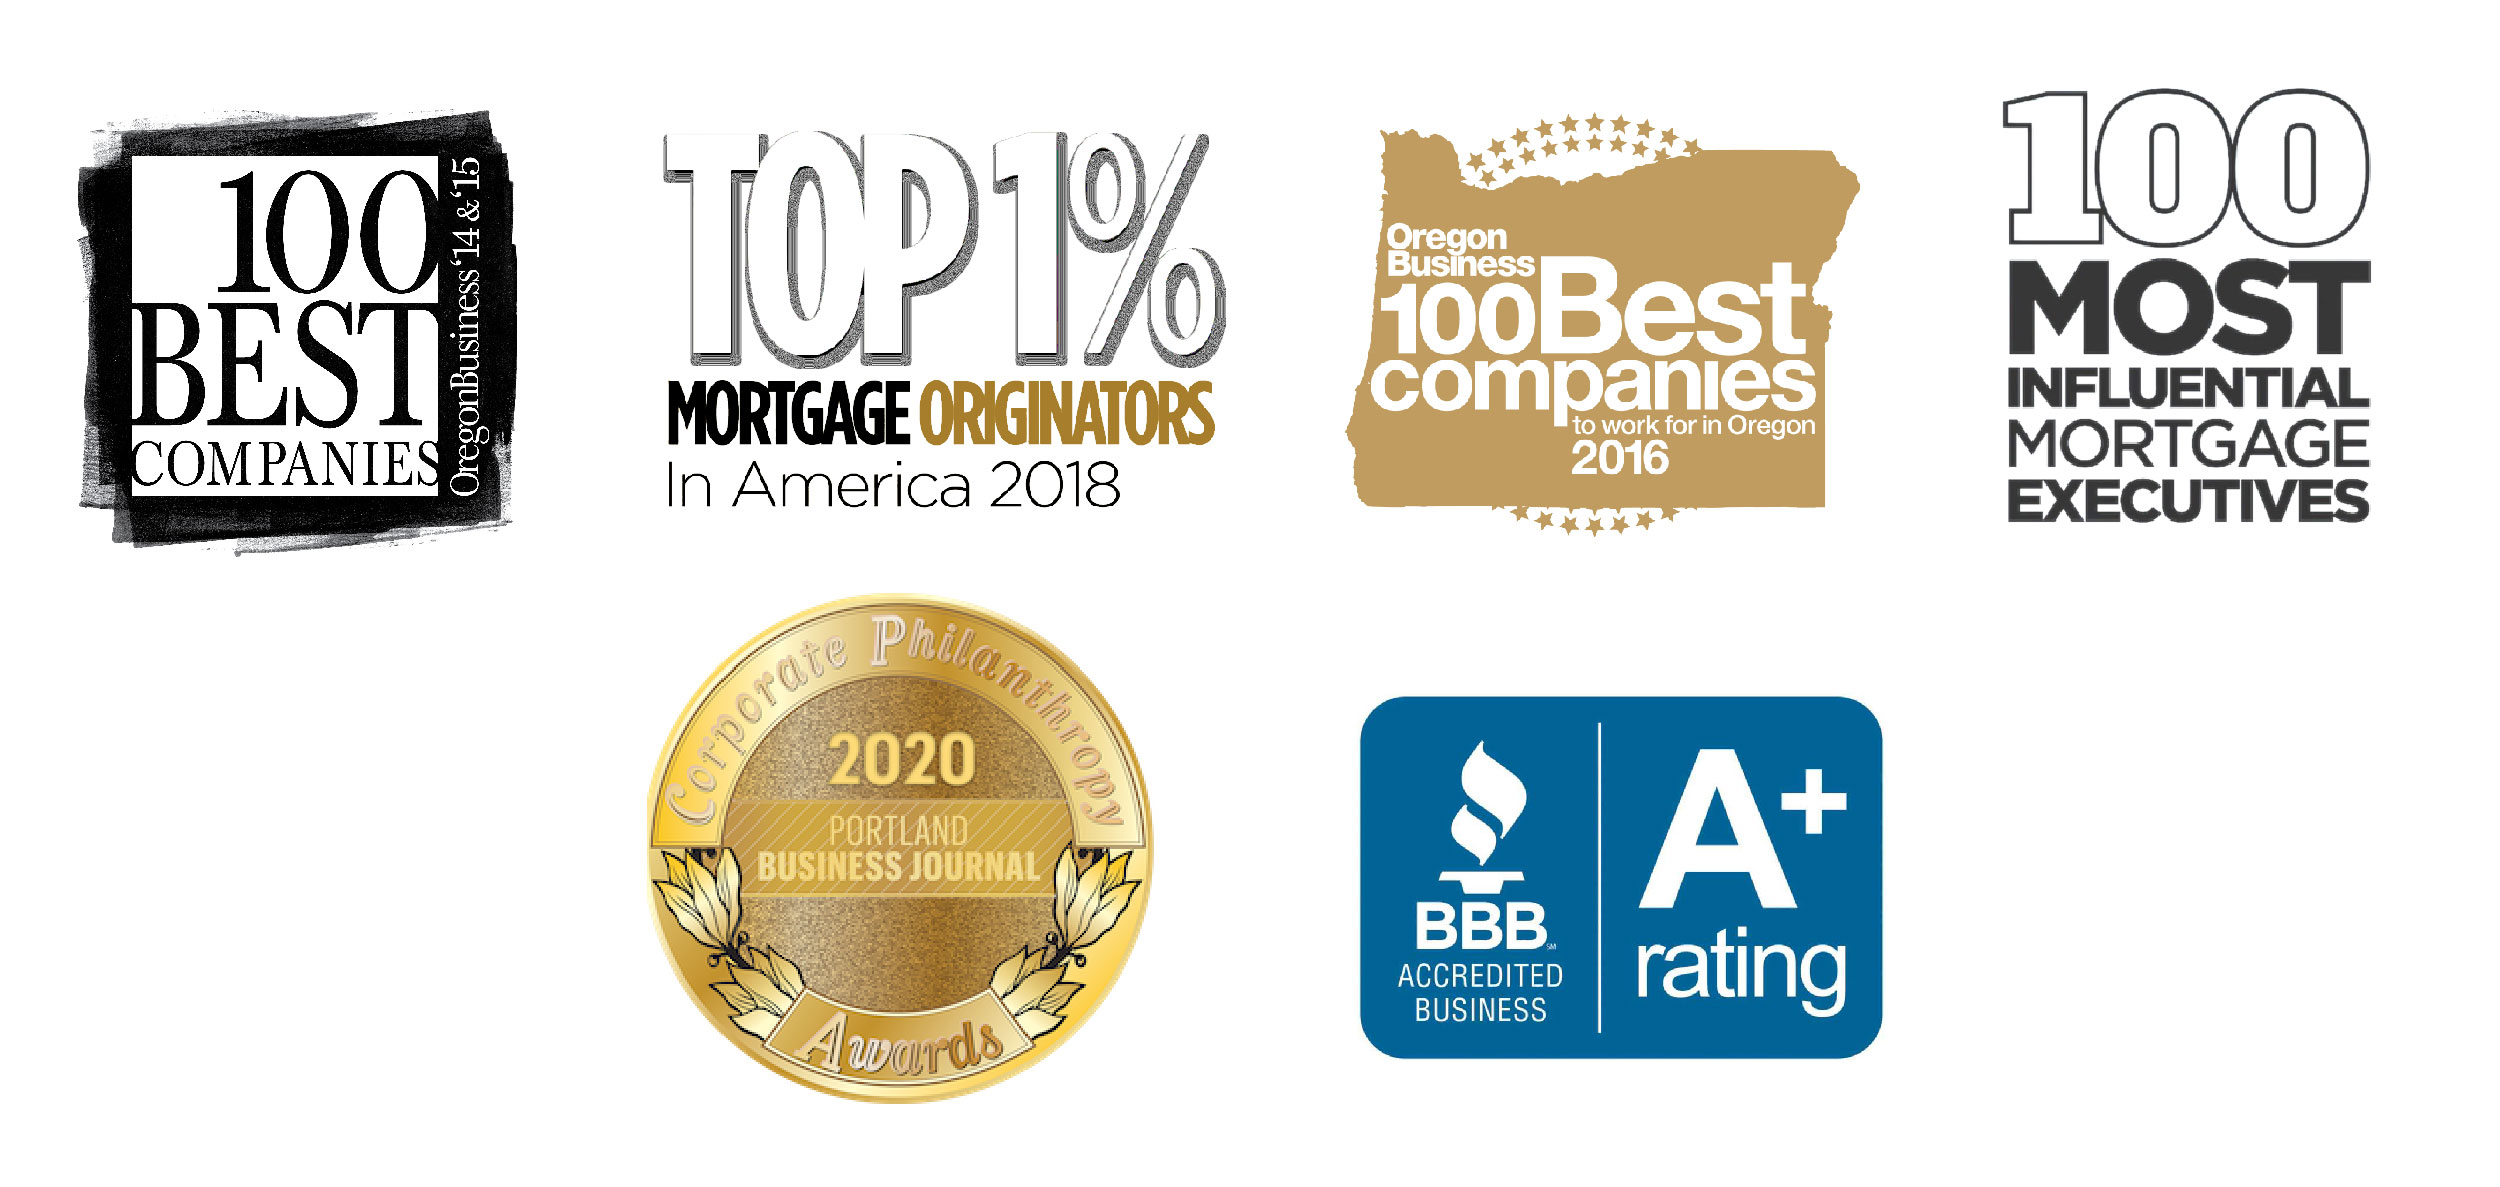 Directors+Mortgage+Awards-01